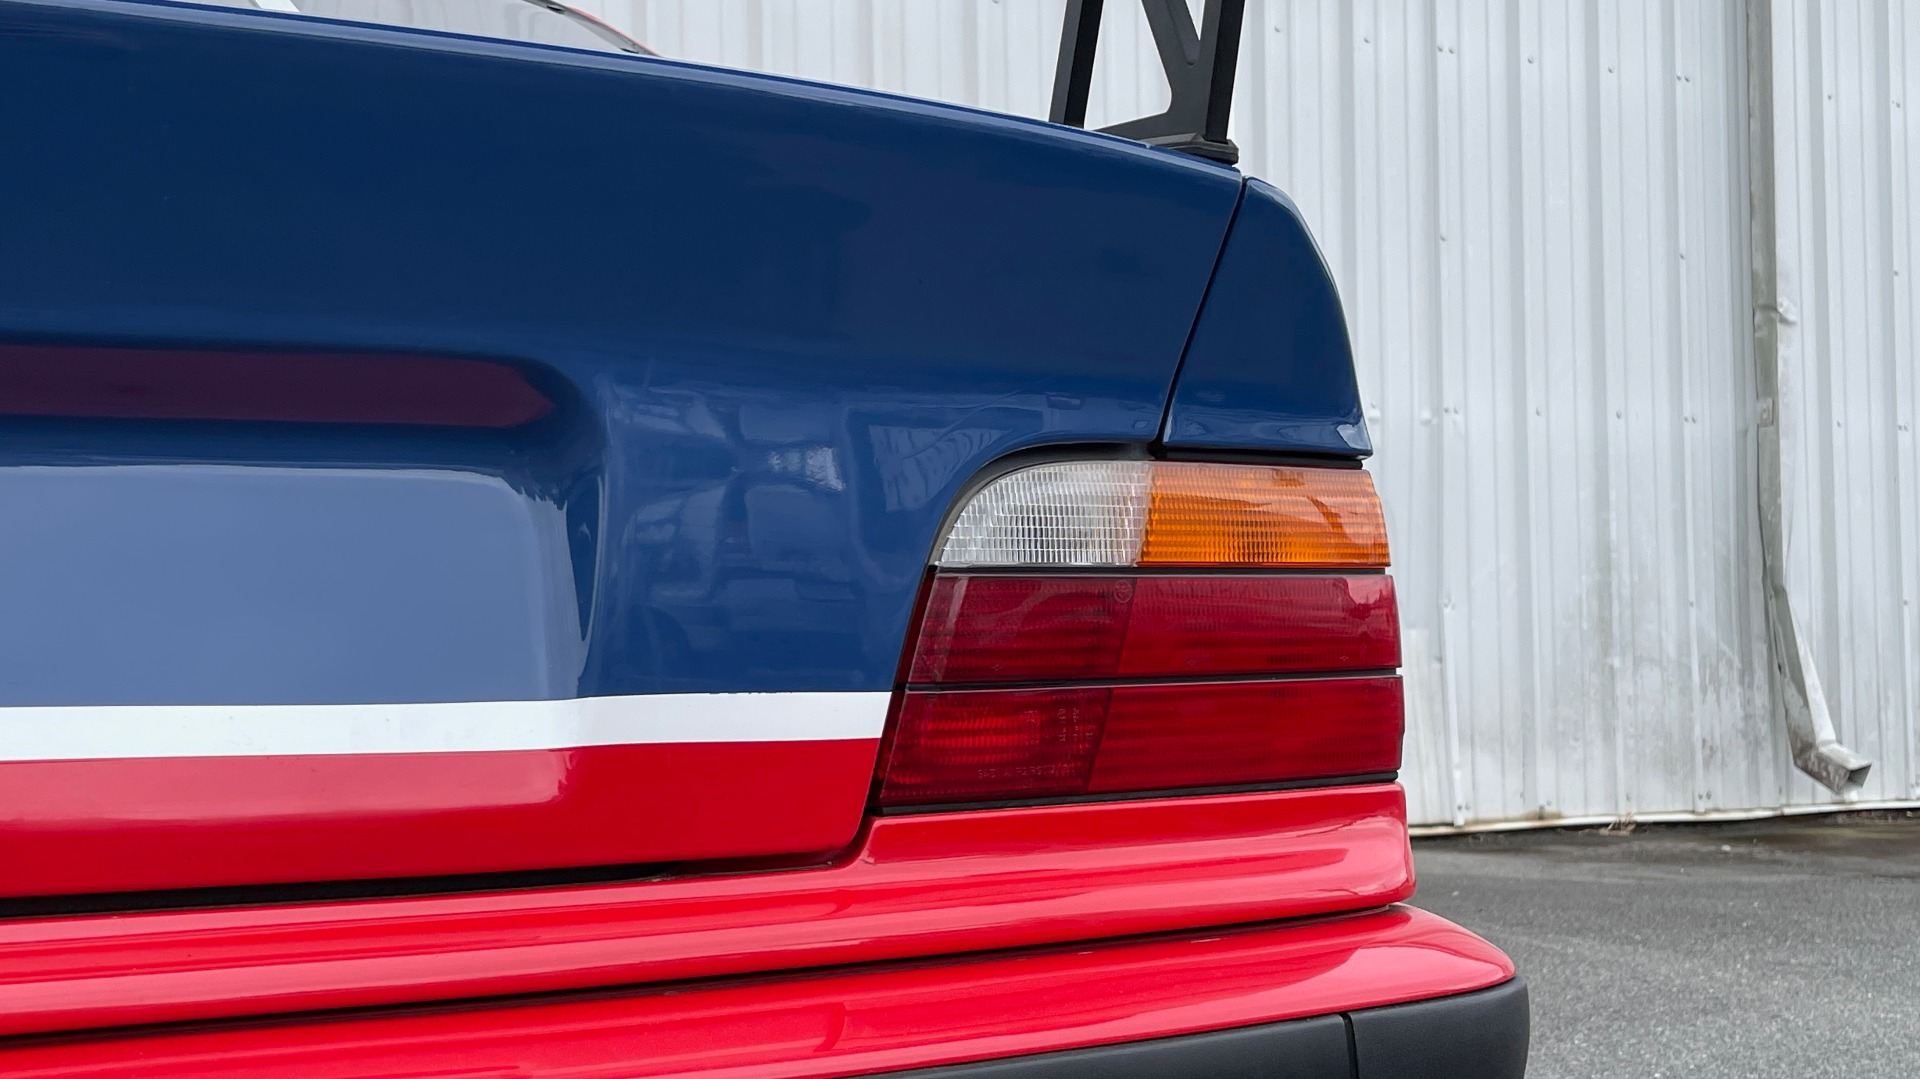 Used 1996 BMW 3-SERIES M3 TRACK CAR / 5-SPD / MANUAL / FULL CAGE / CARBON FIBER WING for sale $47,995 at Formula Imports in Charlotte NC 28227 41